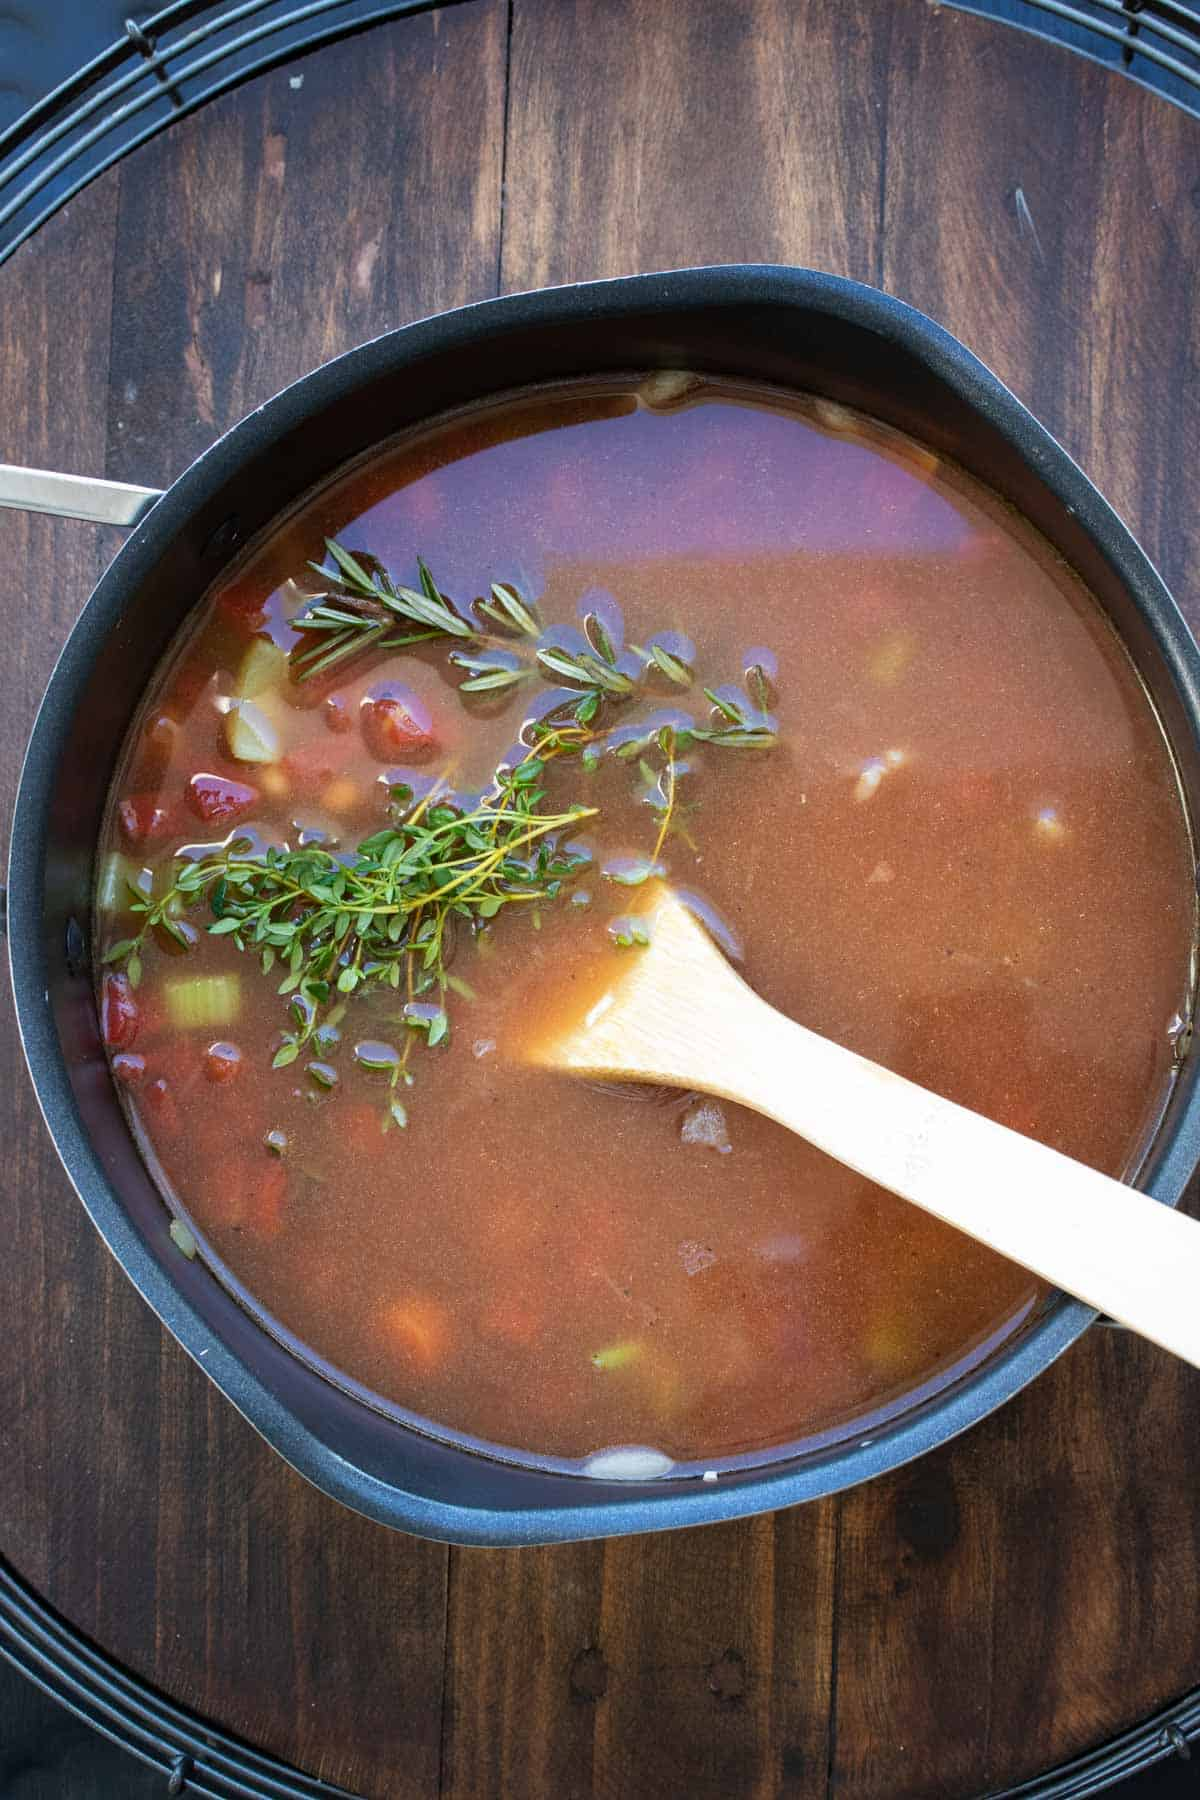 Veggie and bean soup in a pot with sprigs of rosemary and thyme on top